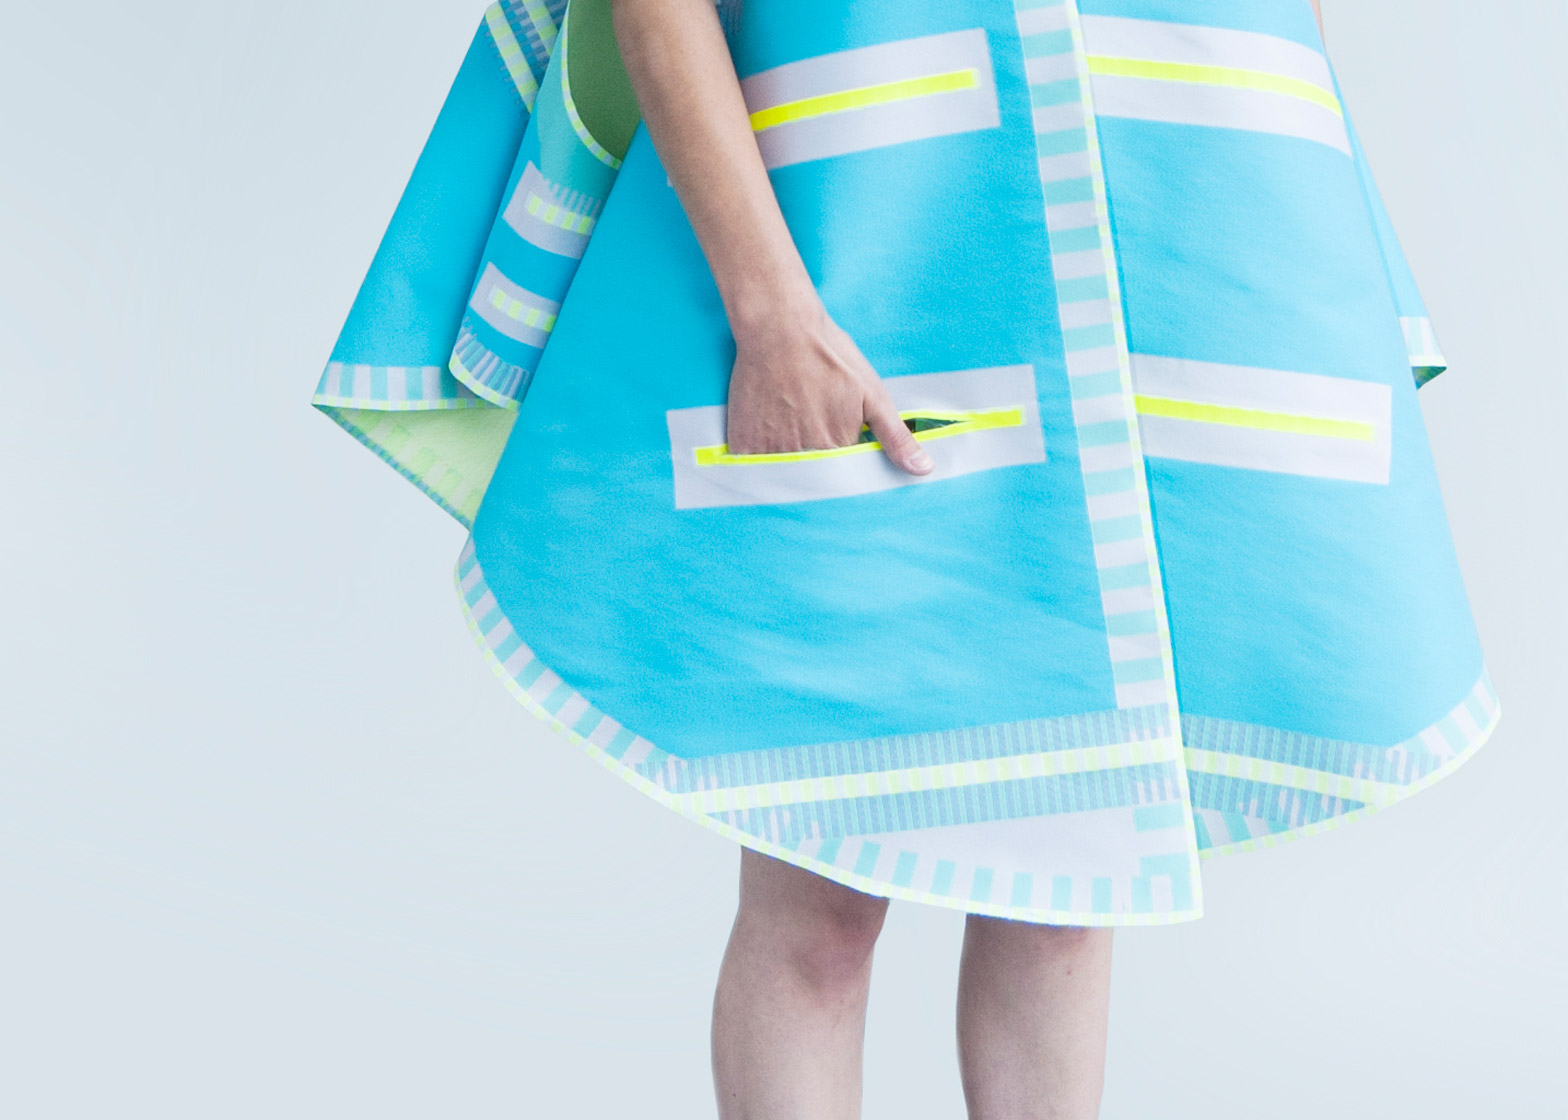 Vera-de-Pont_Pop-Up_fashion-collection_graduation_fashion-designer_Dutch-Design-Week-2015_dezeen_1568_4